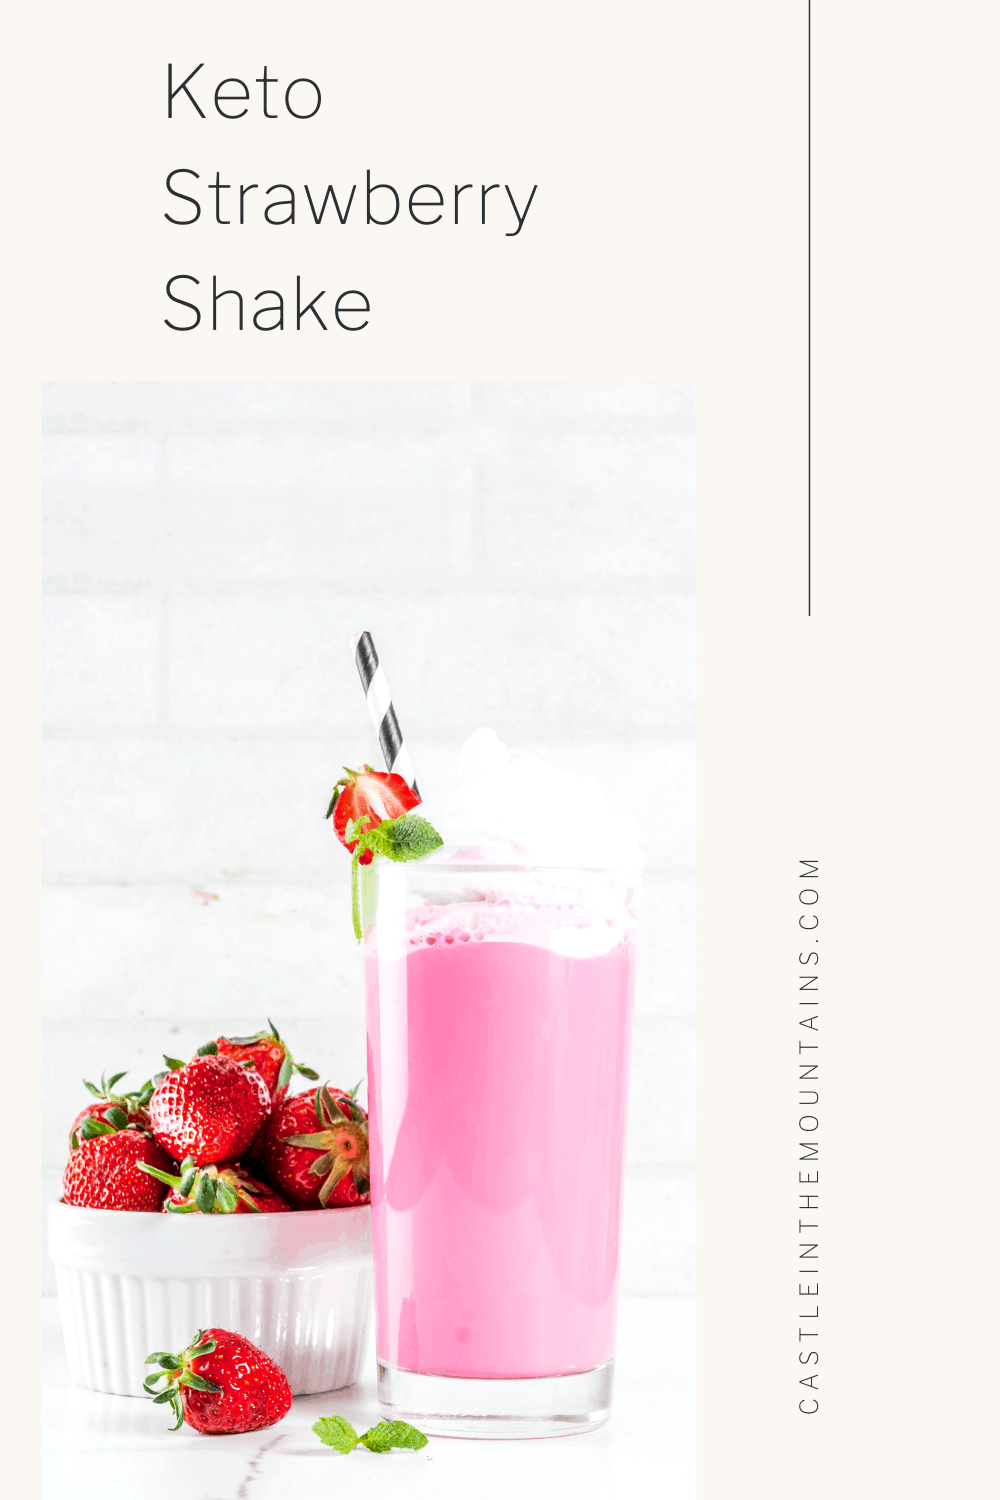 Keto Strawberry Milkshake